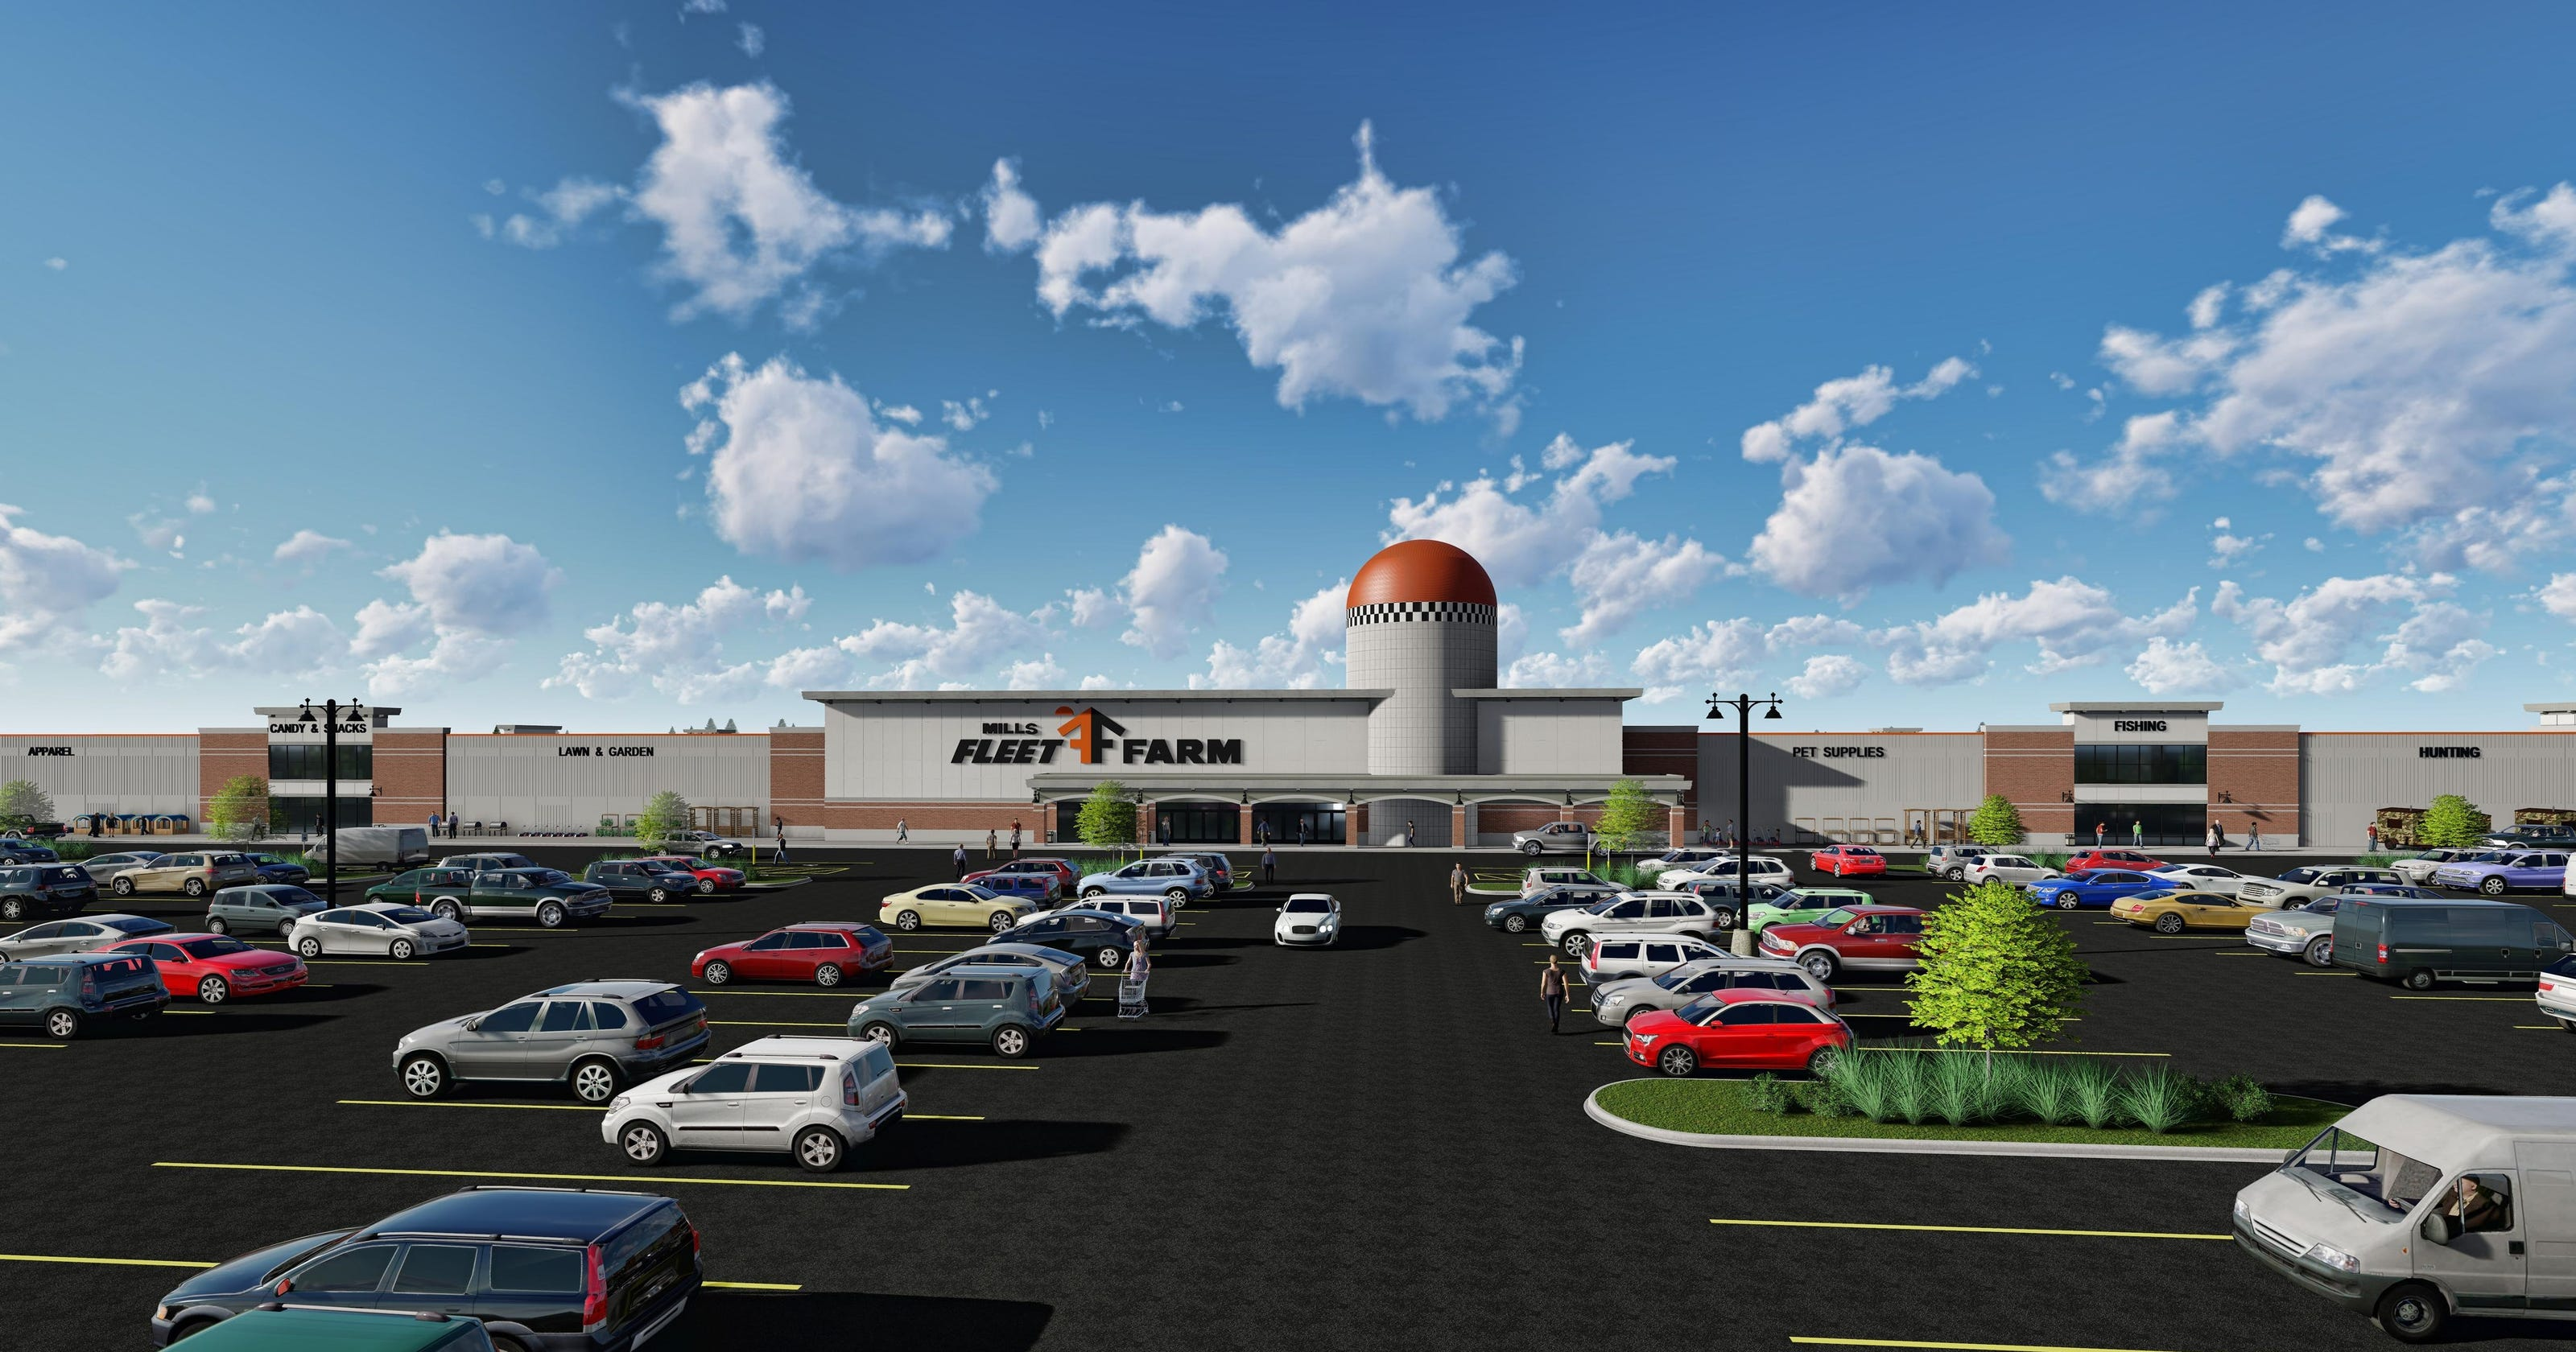 Fleet Farm seen as potential catalyst for Pabst Farms in